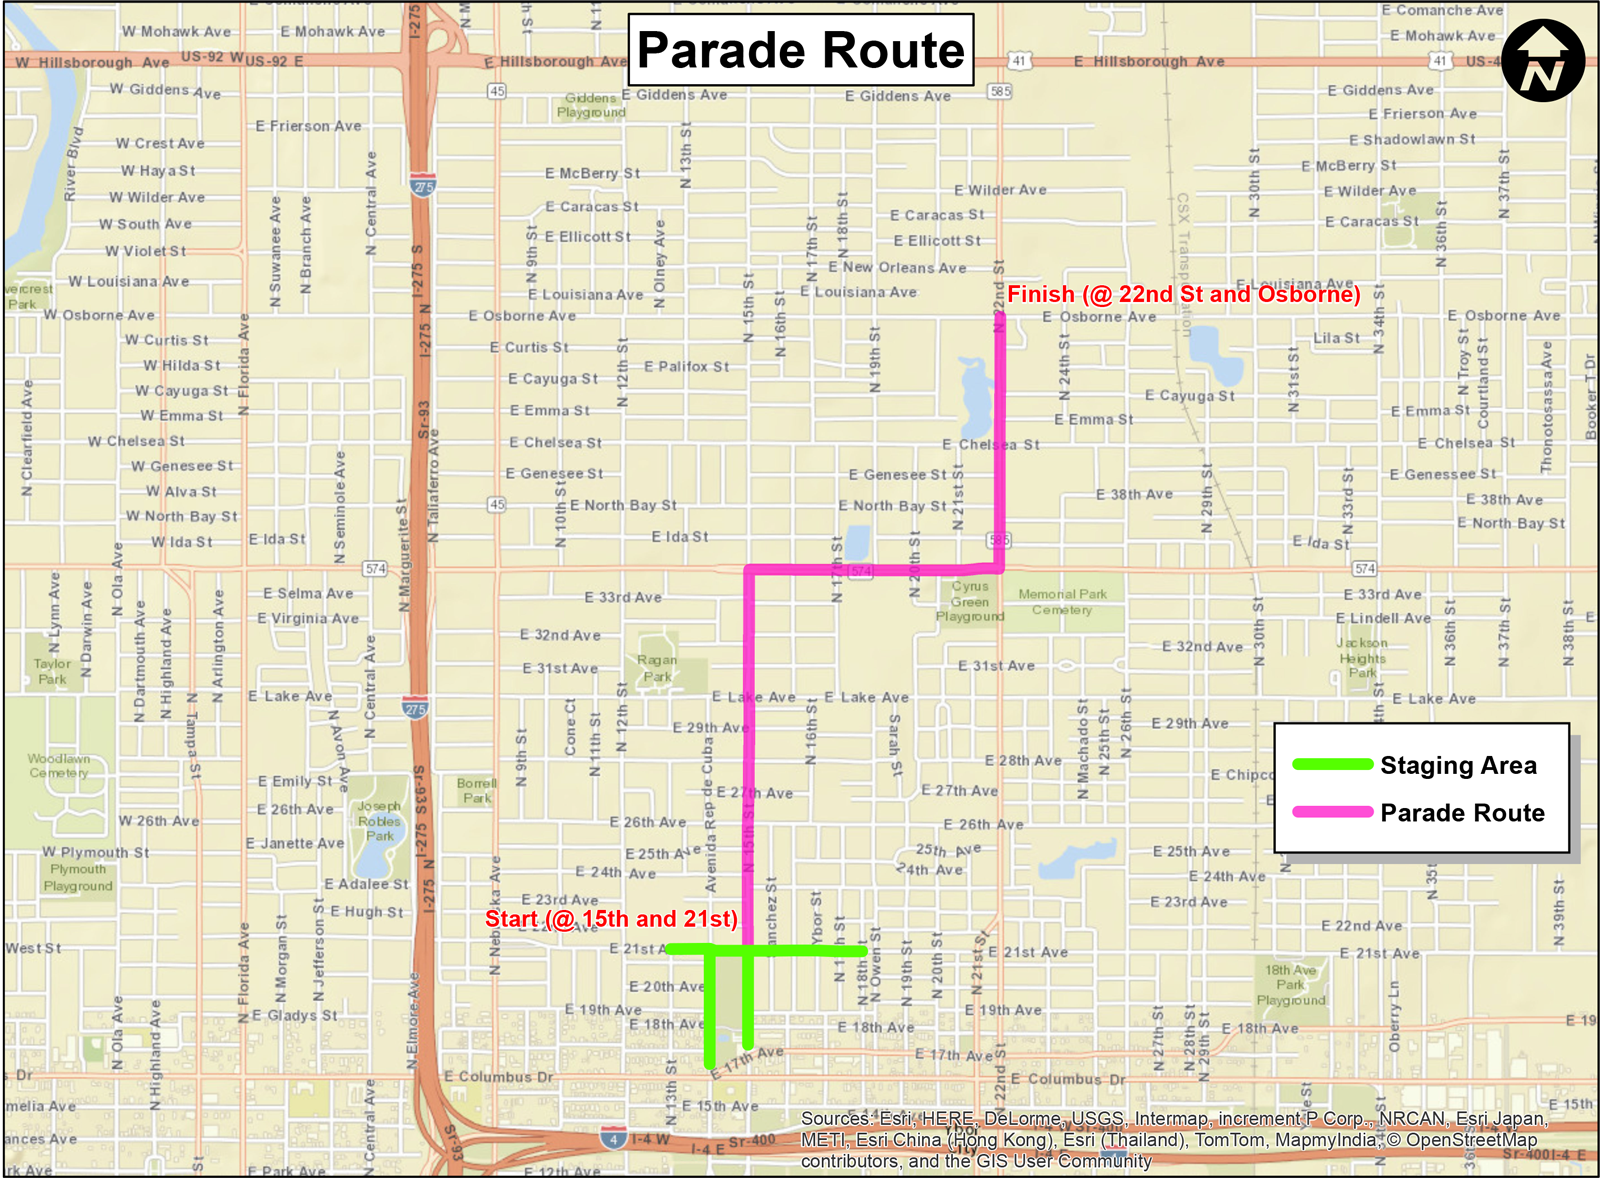 2016-Parade-Route-Map.png